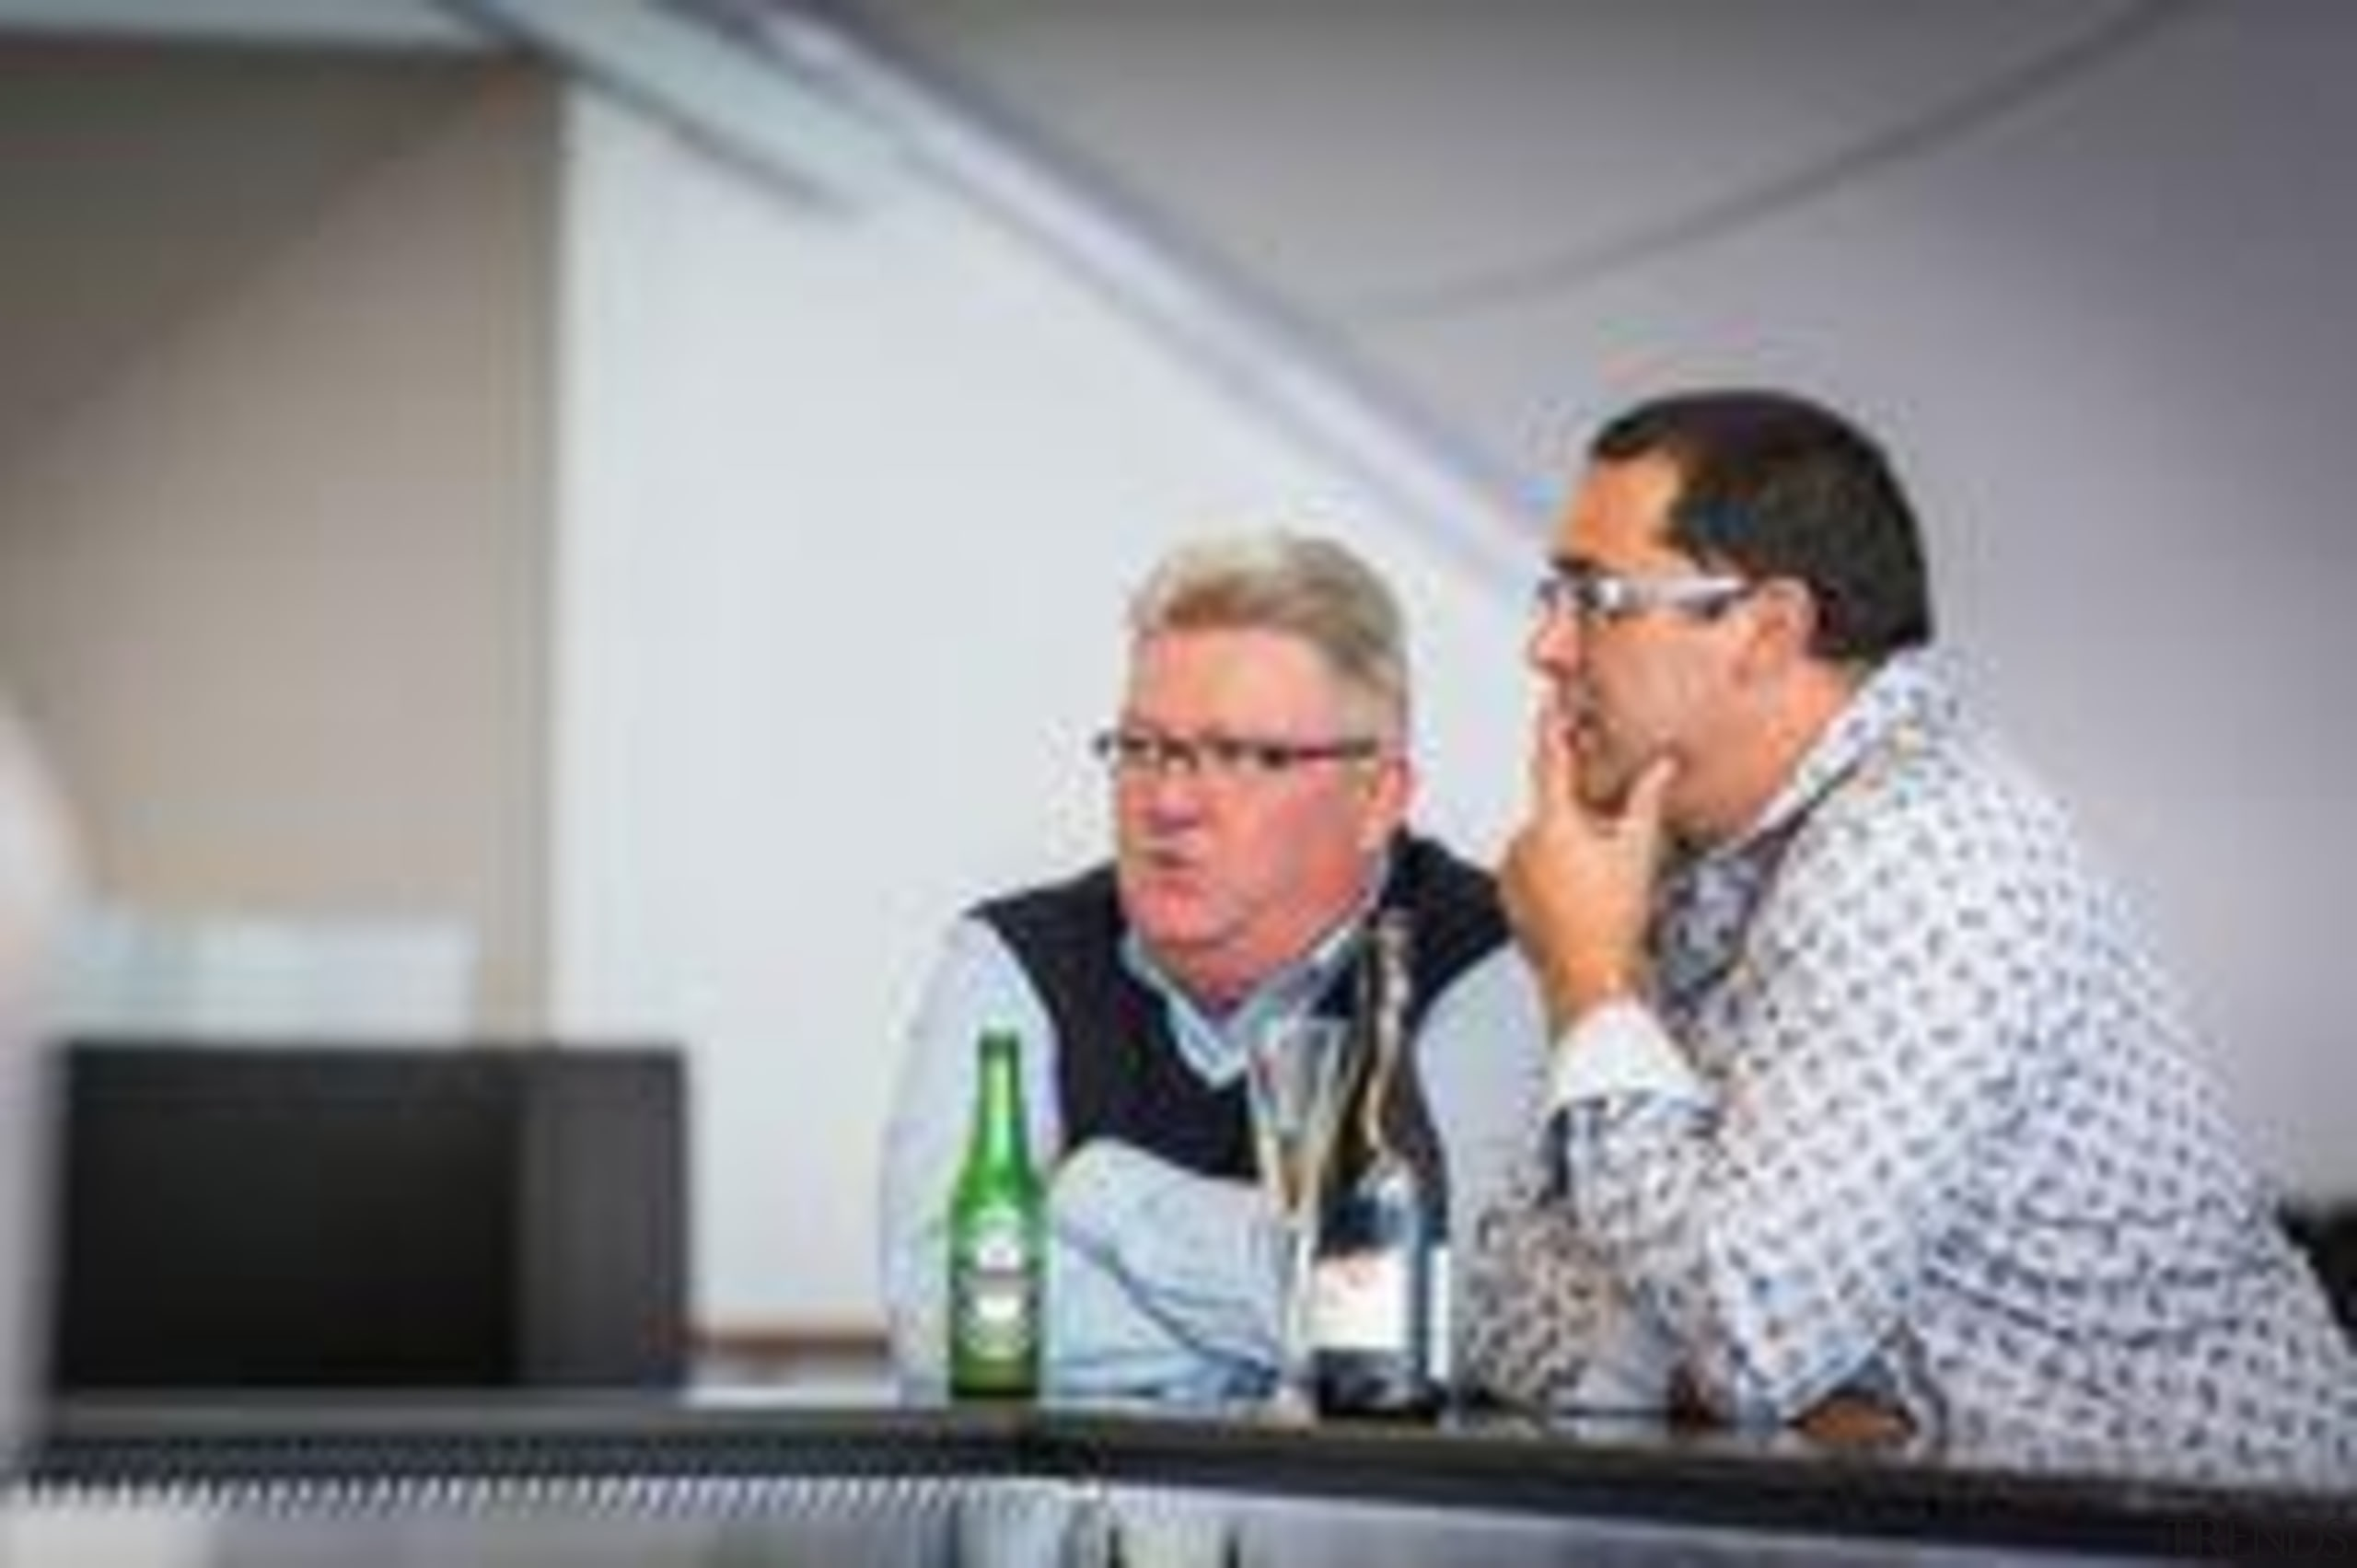 Robert Campion, right, Architectural Profiles Limited. communication, electronic device, technology, gray